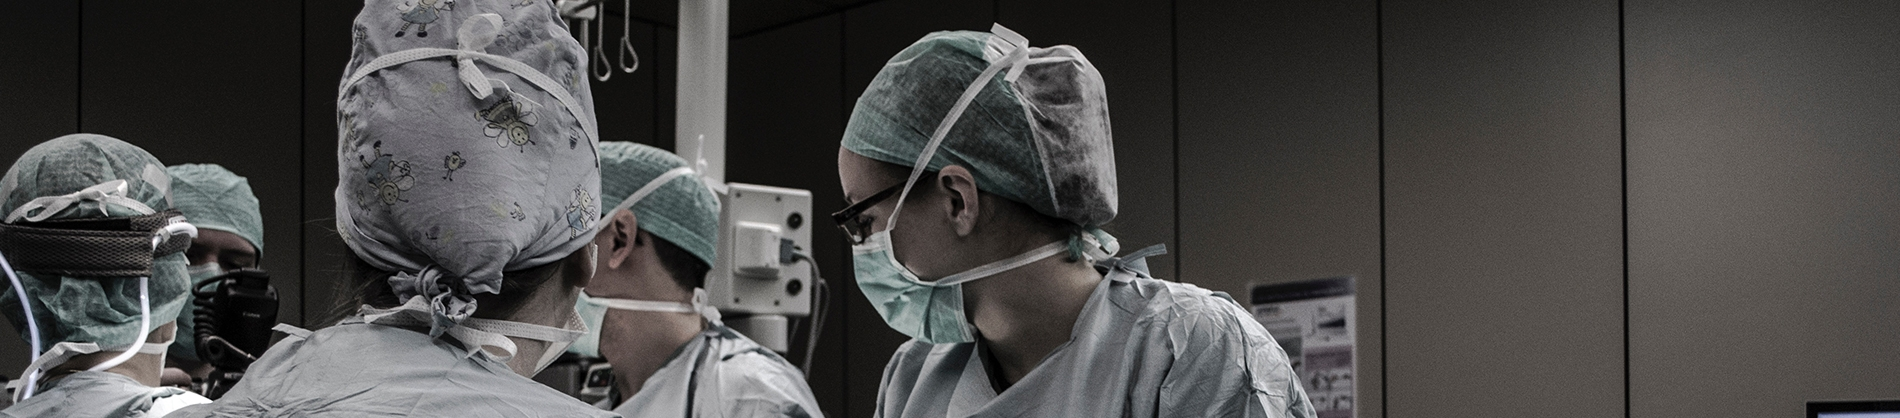 Surgeons in the operating theatre